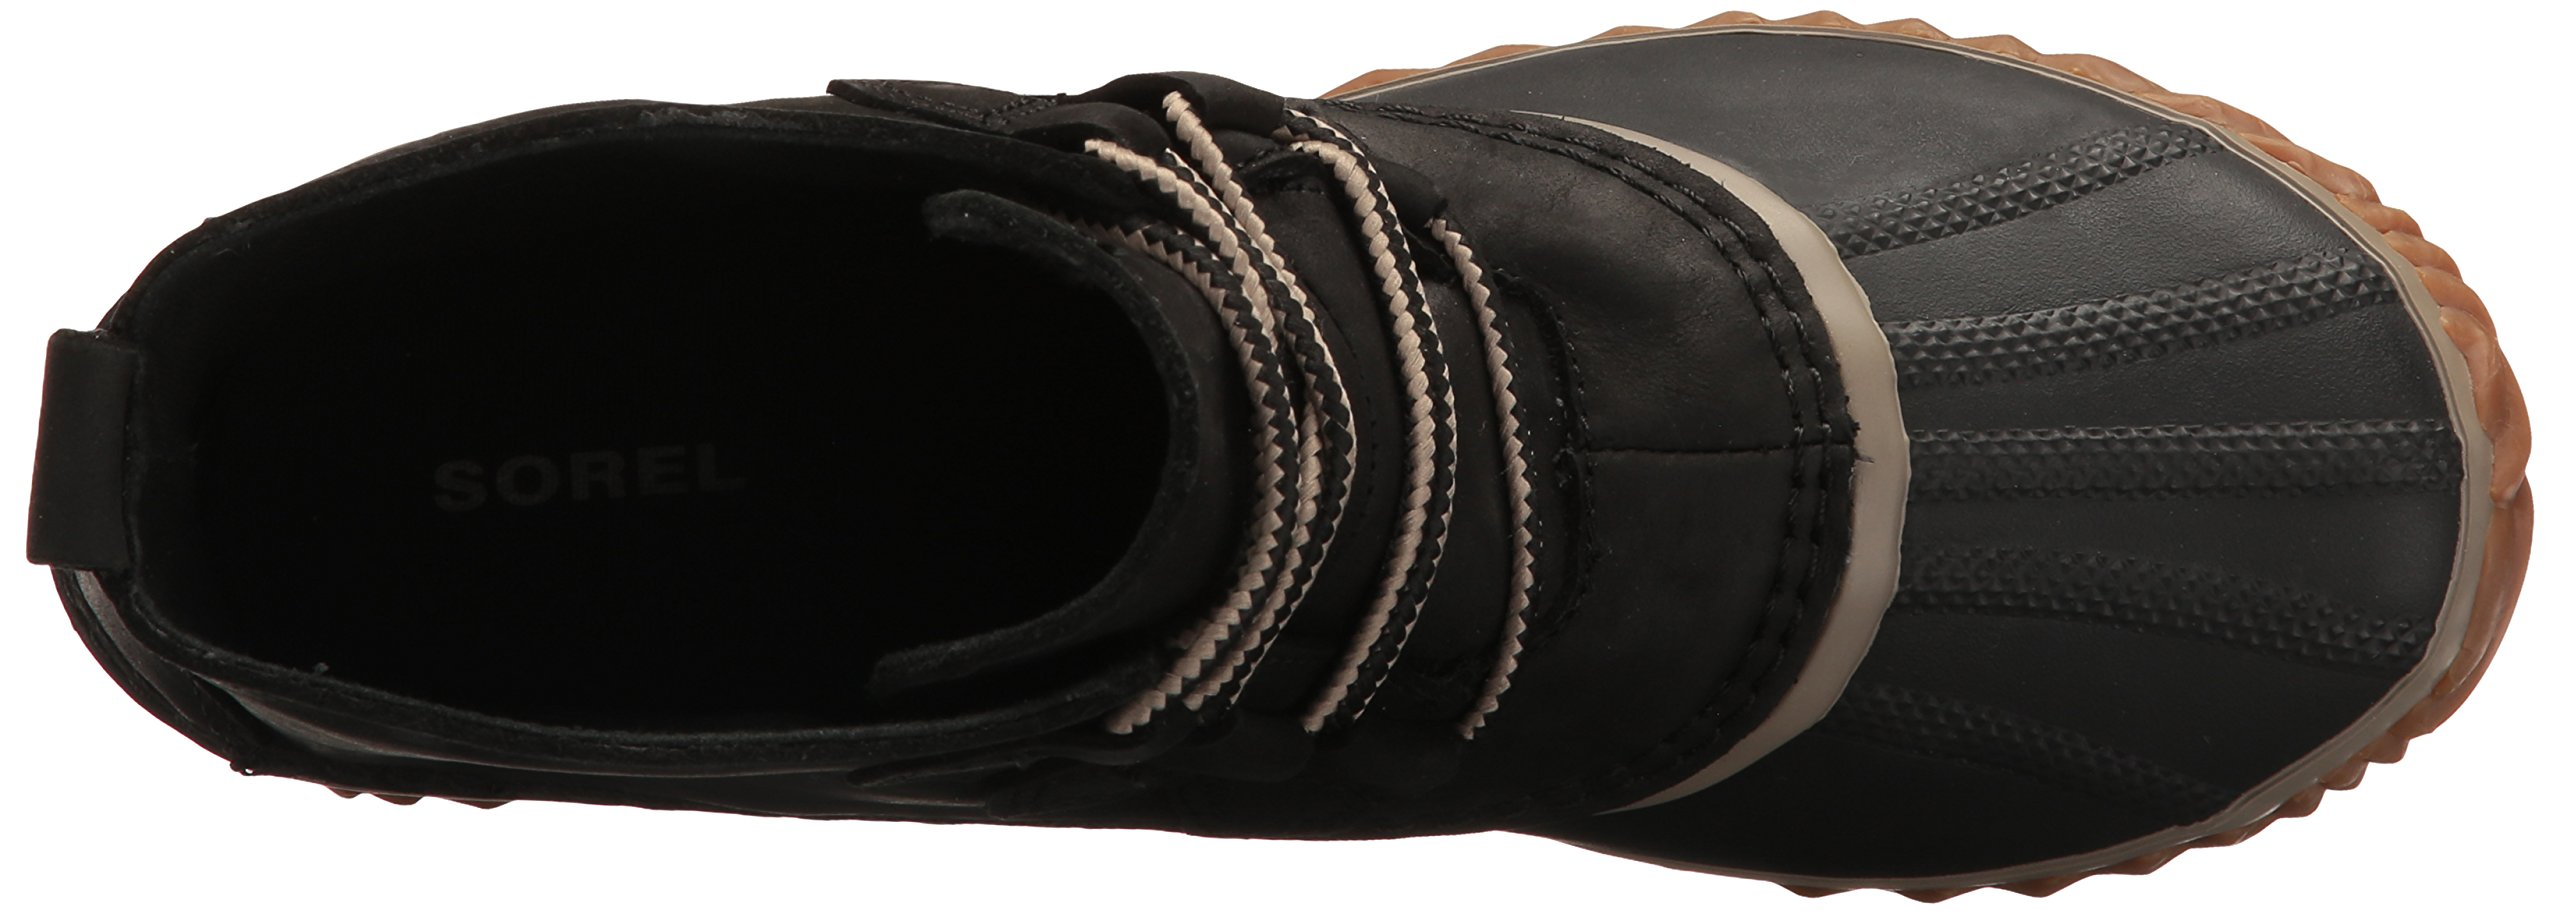 SOREL Women's Out N About Leather Rain Snow Boot, Black, 7.5 M US by SOREL (Image #9)